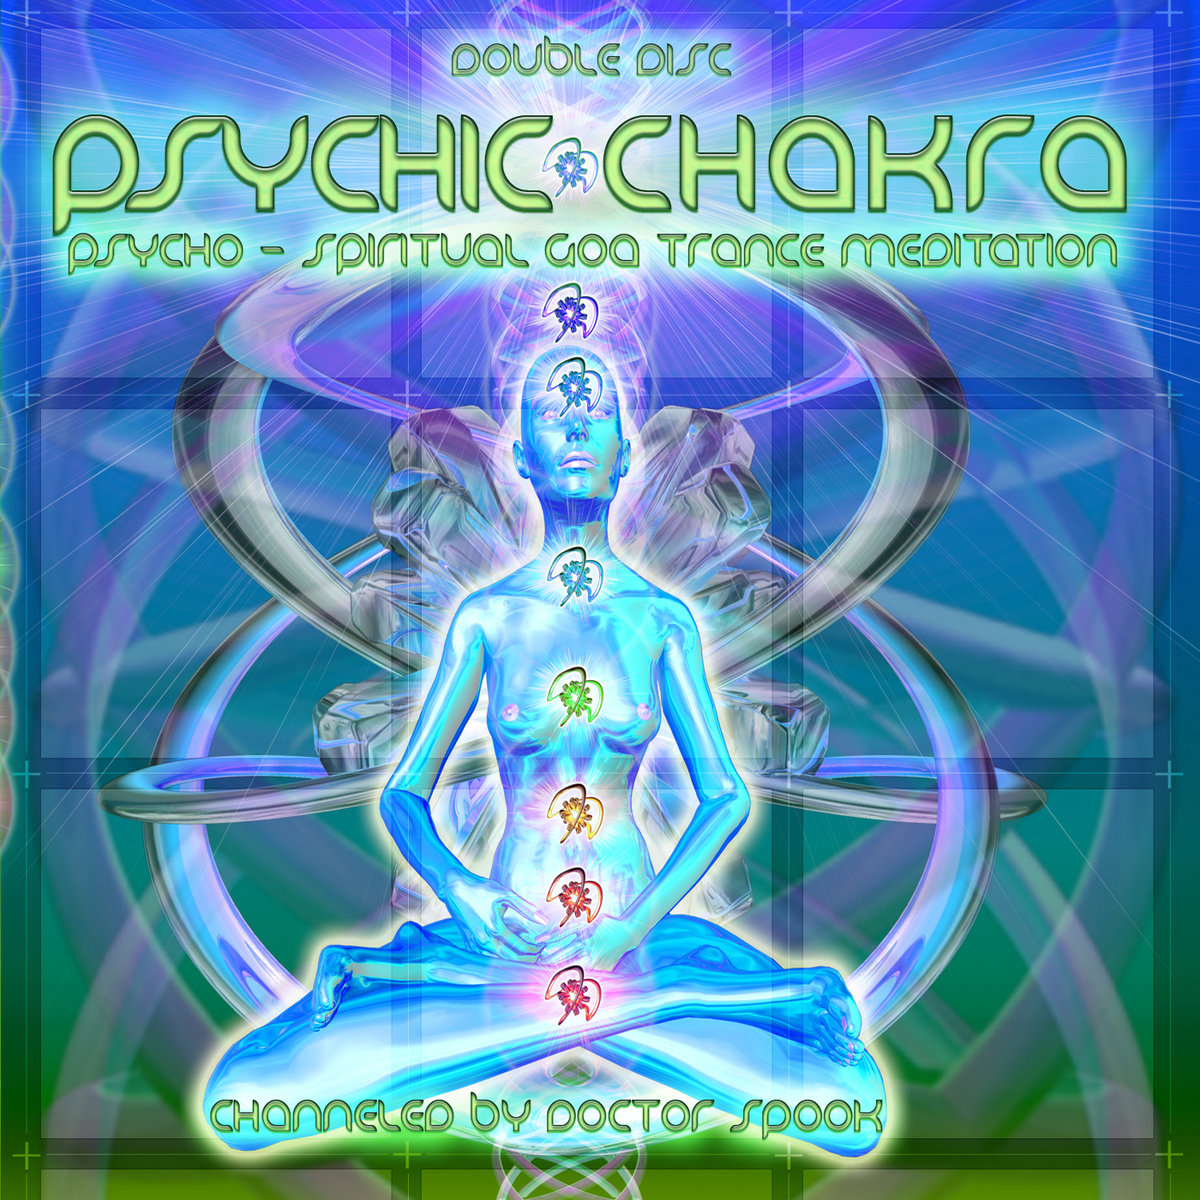 Mindstorm - Star Stuff @ 'Various Artists - Psychic Chakra (Channeled by Dr. Spook)' album (electronic, psychic chakra)